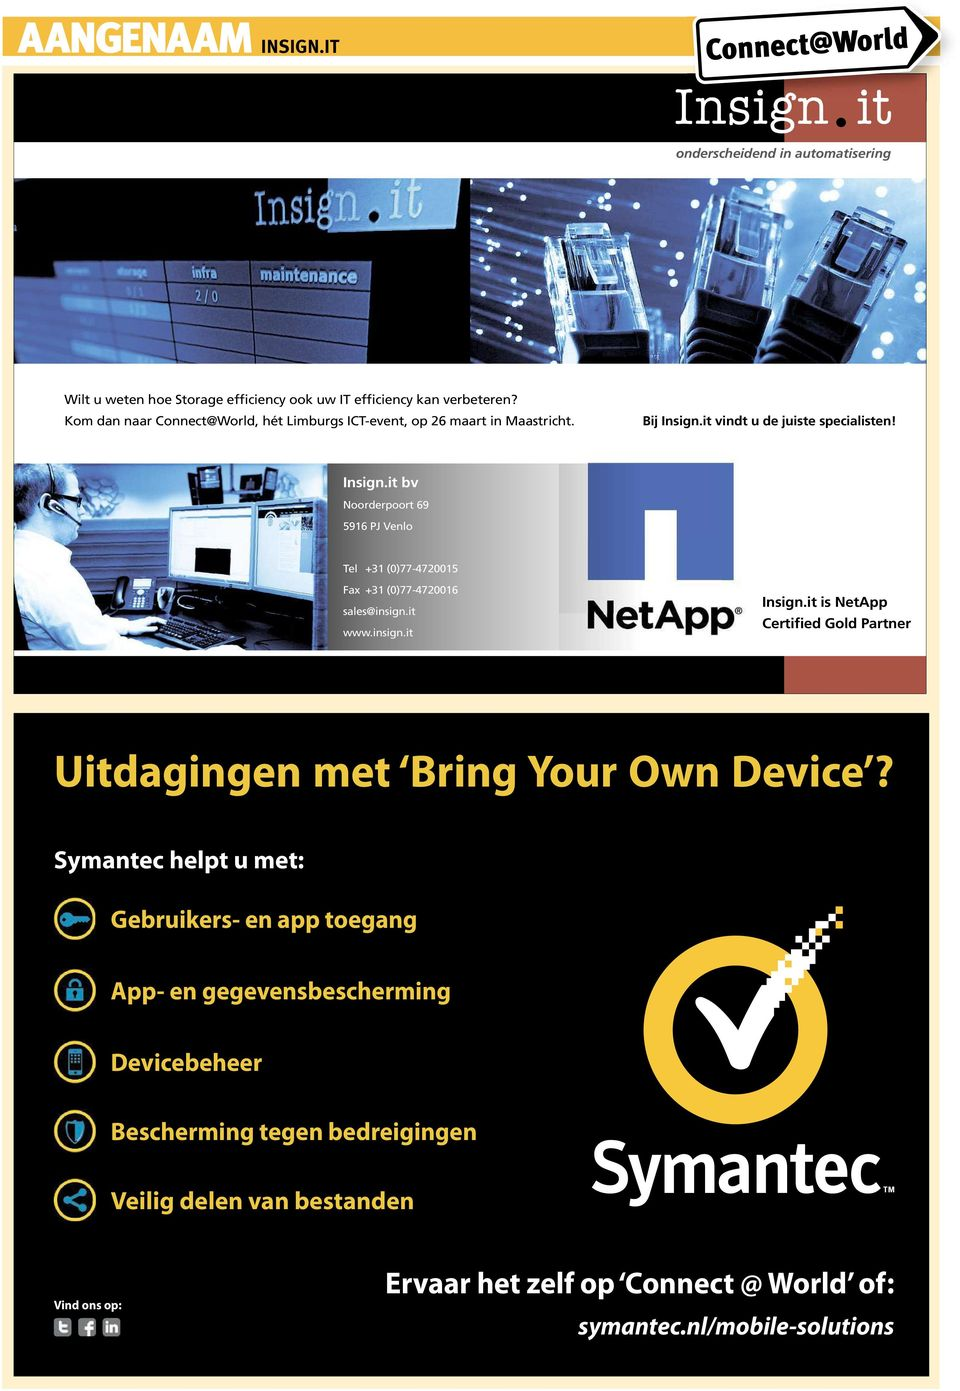 it vindt udejuiste specialisten! Insign.it bv Noorderpoort 69 5916 PJ Venlo Tel +31 (0)77-4720015 Fax +31 (0)77-4720016 sales@insign.it www.insign.it Insign.